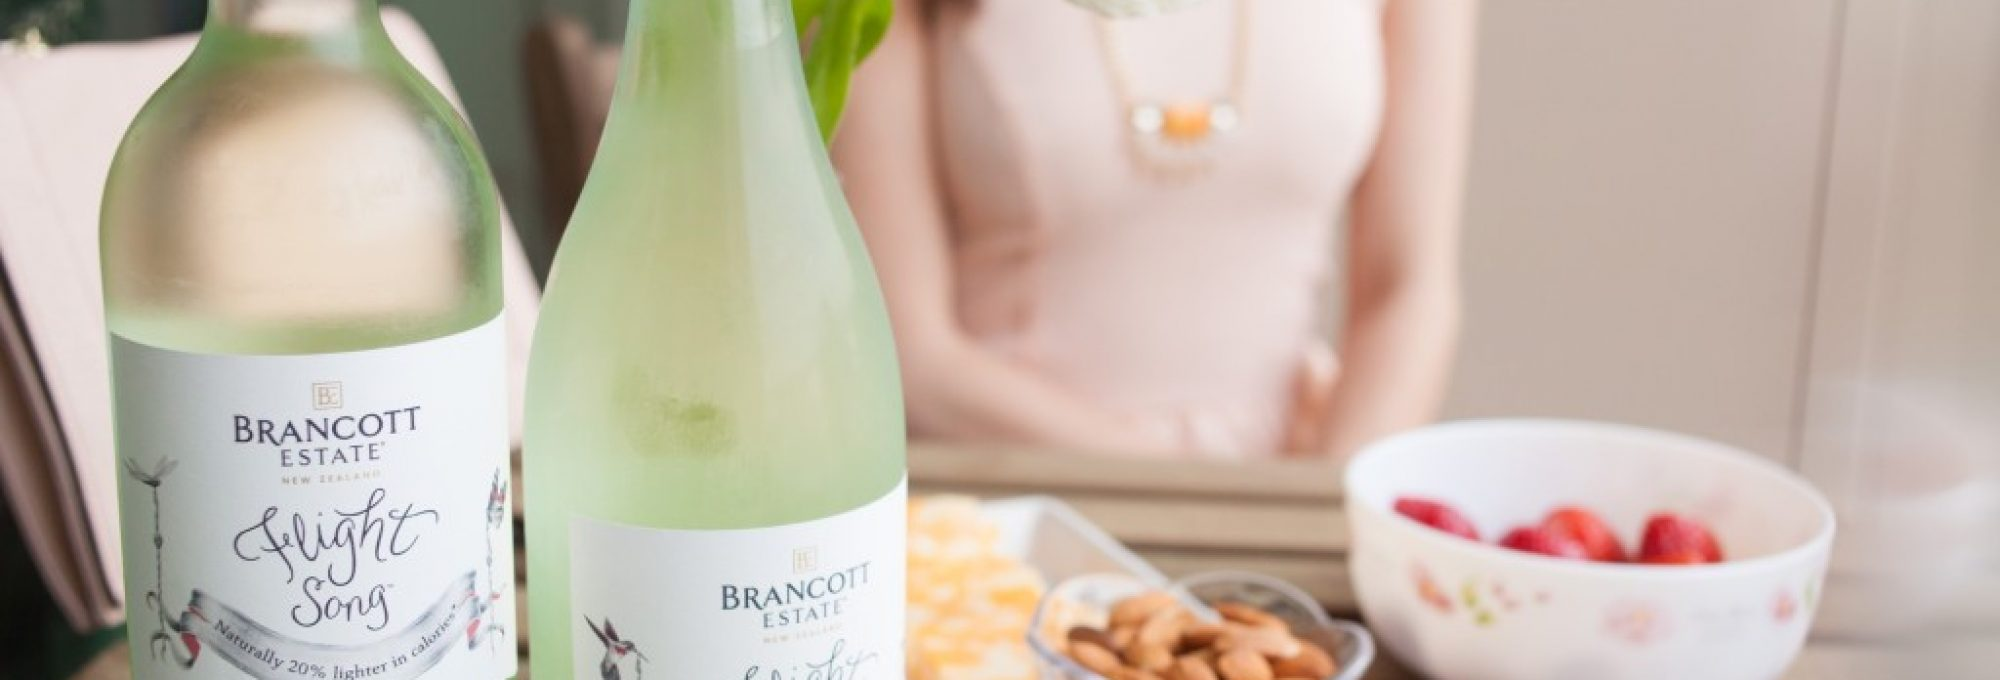 "brancott estate ""flight song"" wine, ami clubwear, hand in pocket, olivia + joy, spring, afternoon, wine and cheese, proof eyewear"